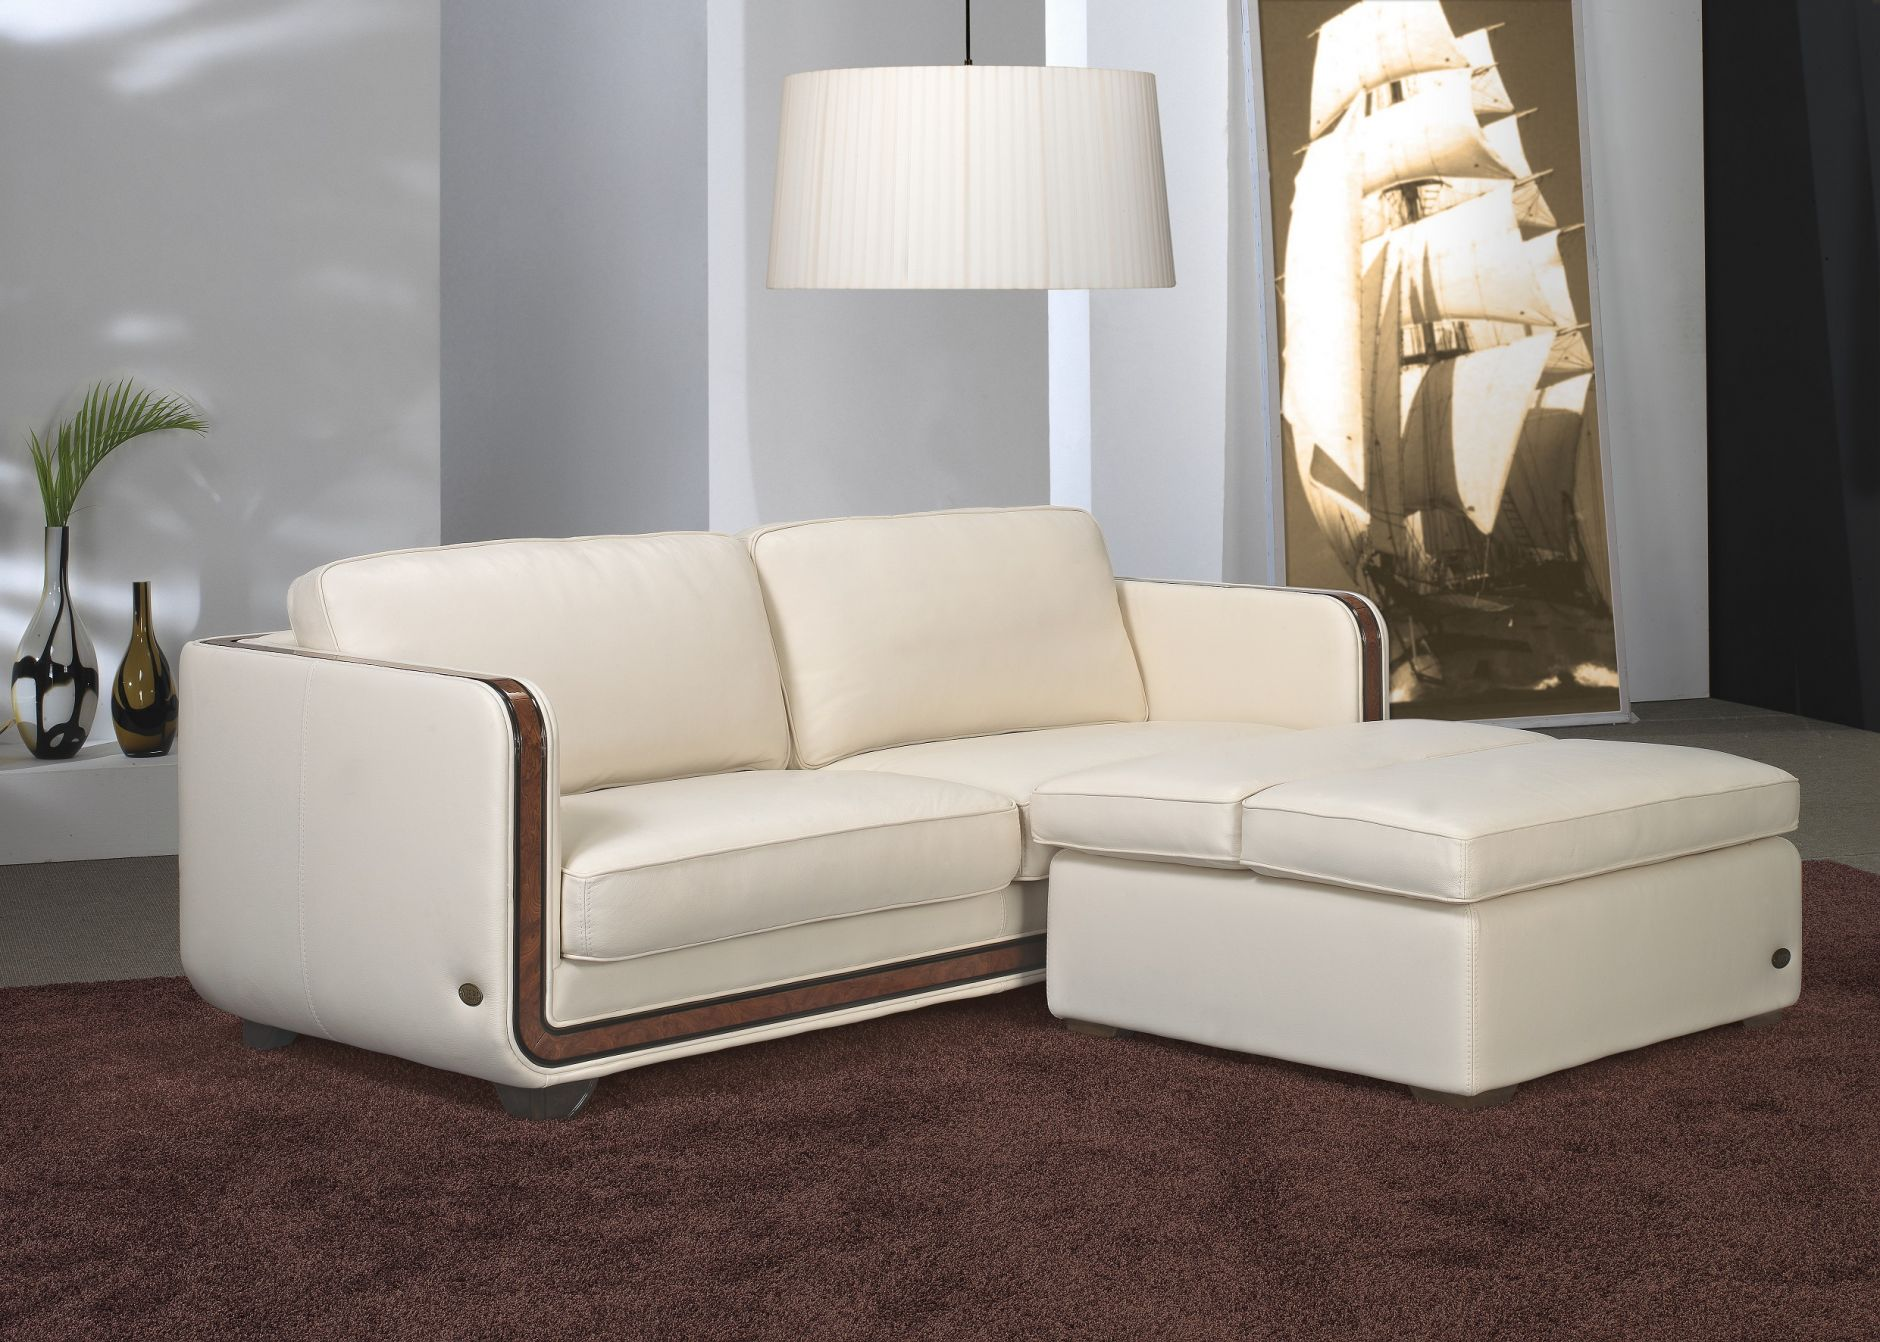 emejing divanidivani luxurioses sofa design contemporary